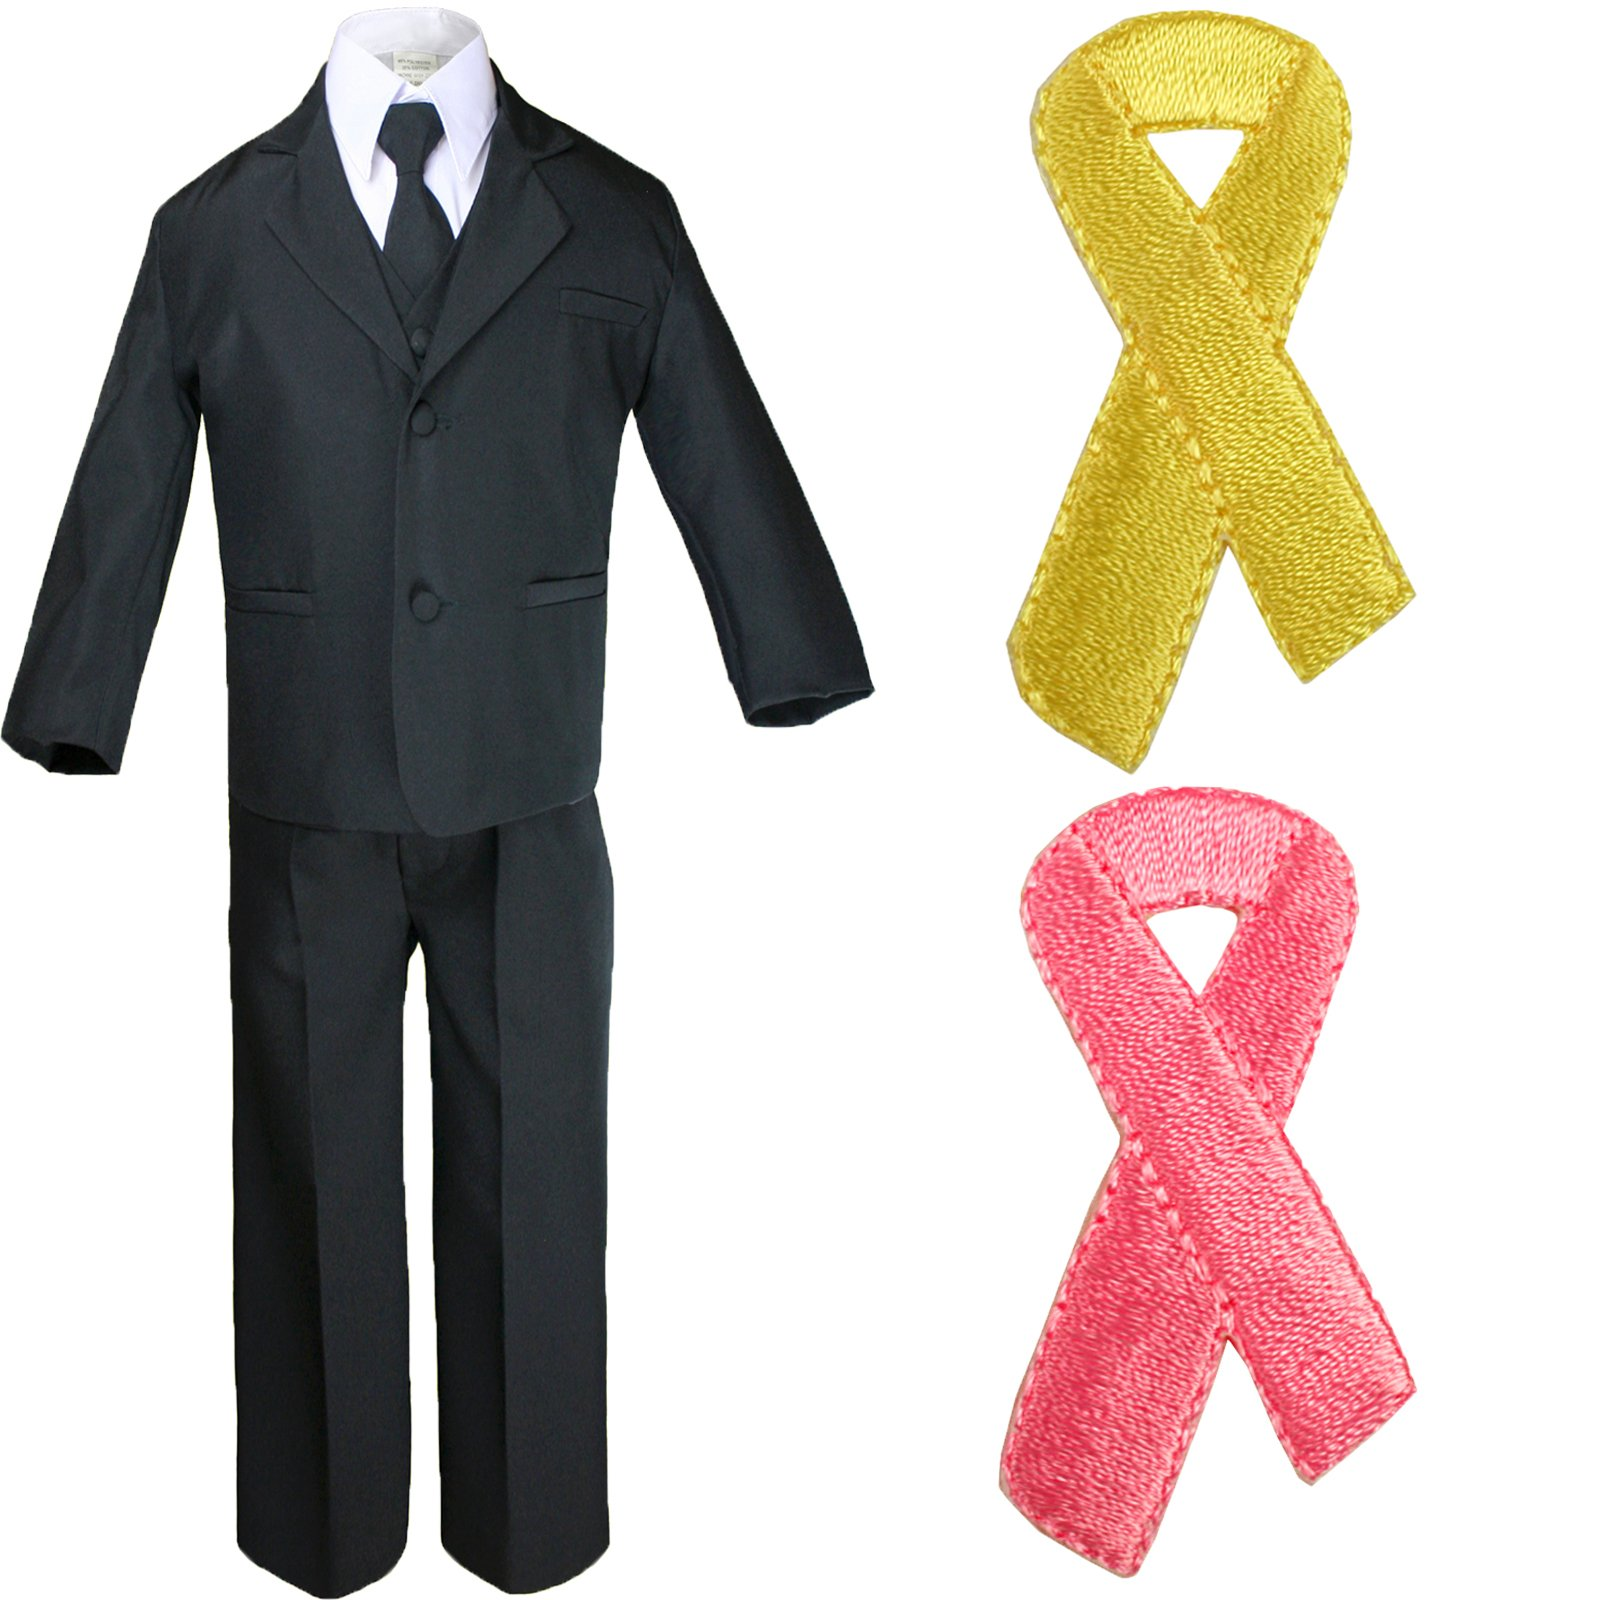 5pc Baby Boy Teen Black Suit w/Cancer Awareness Ribbon Adhesive Love Hope Patch (5, Add Pink Ribbon)